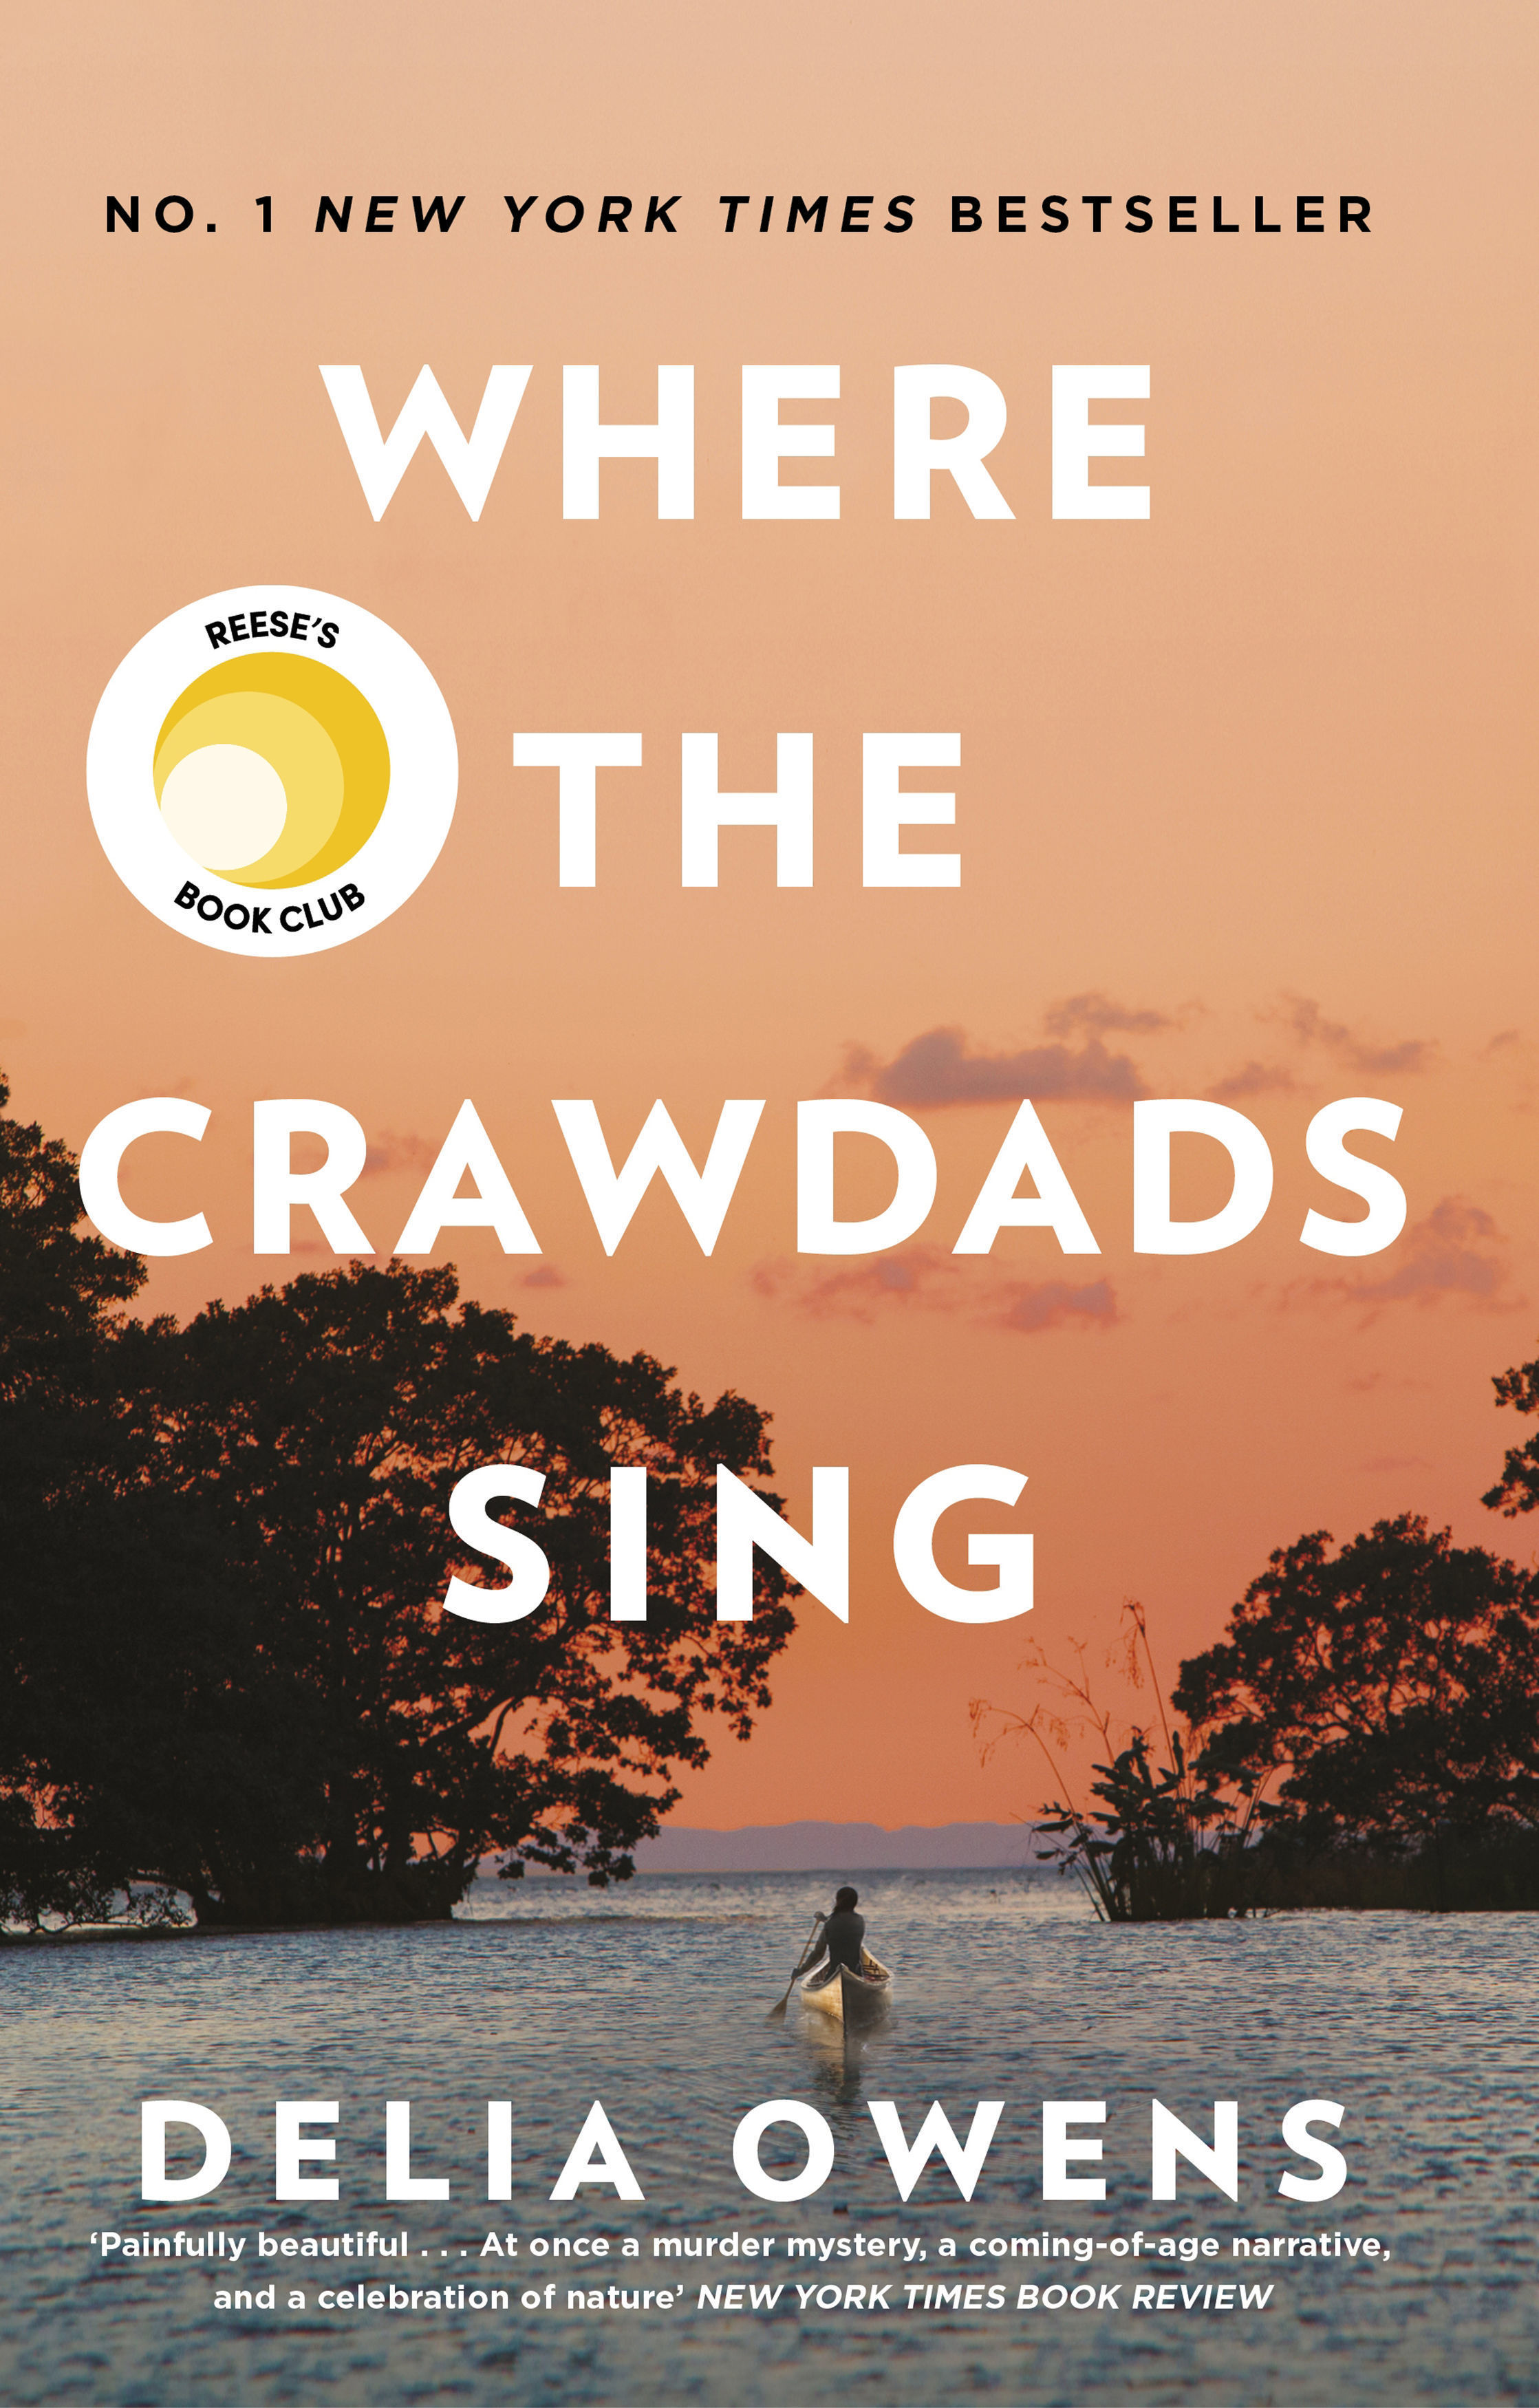 Book Cover Handout of  Where The Crawdads Sing by Delia Owens. See PA Feature BOOK Reviews. Picture credit should read: PA Photo/Corsair. WARNING: This picture must only be used to accompany PA Feature BOOK Reviews.